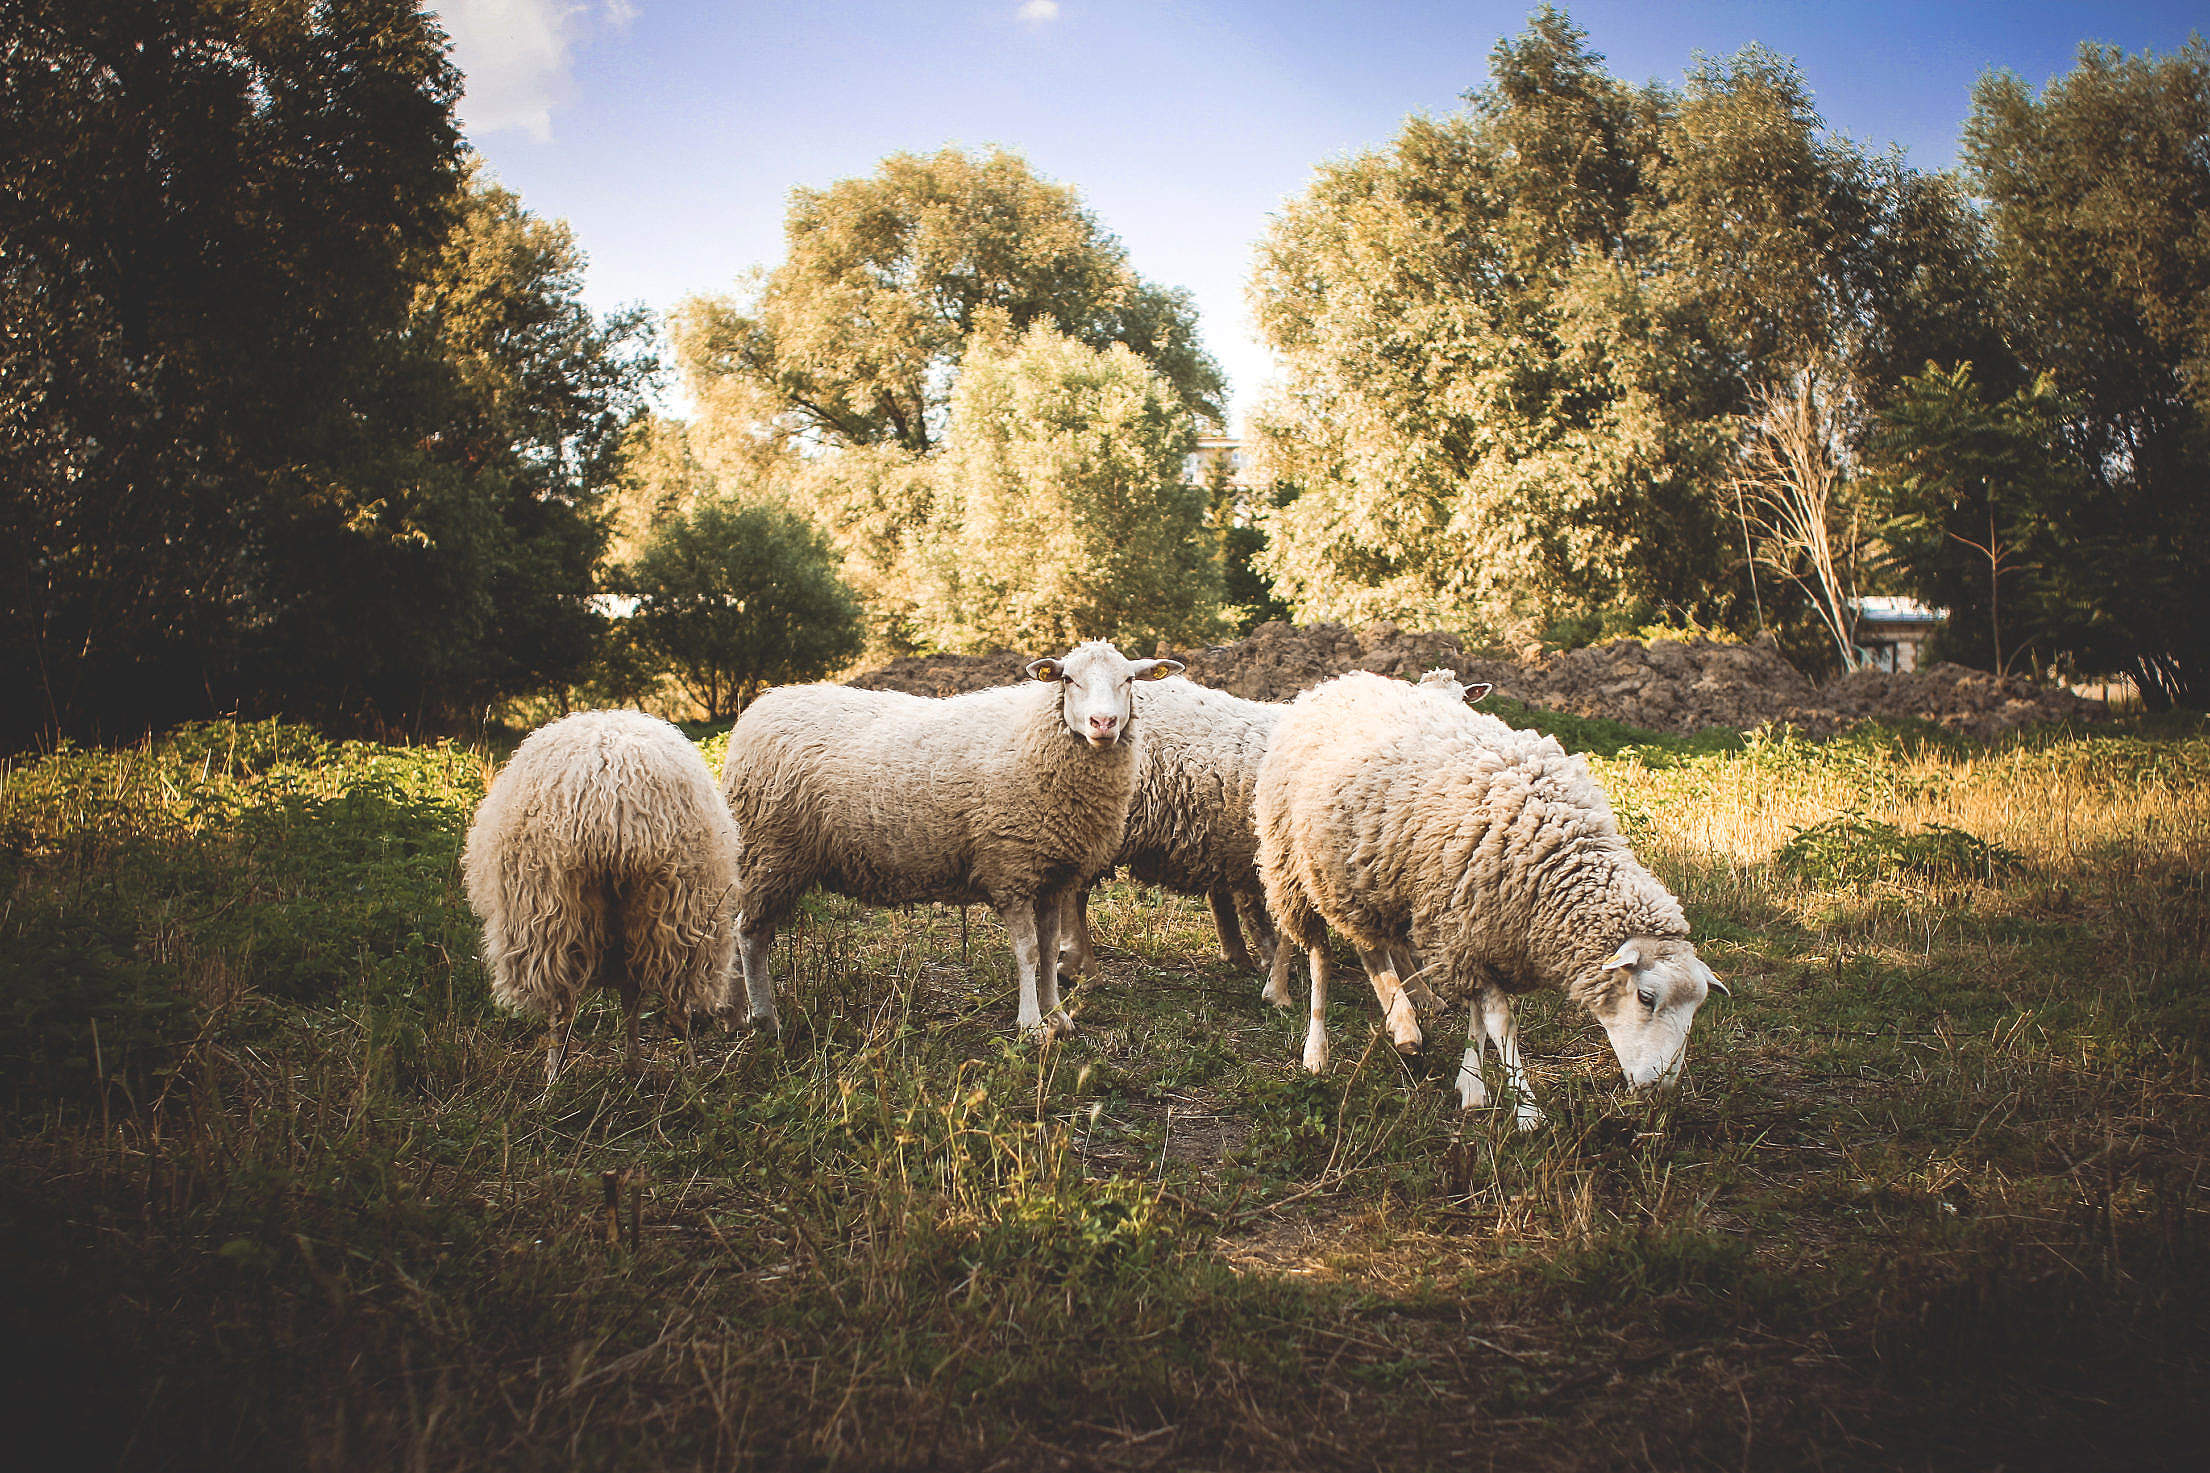 A Small Flock of Sheep Free Stock Photo